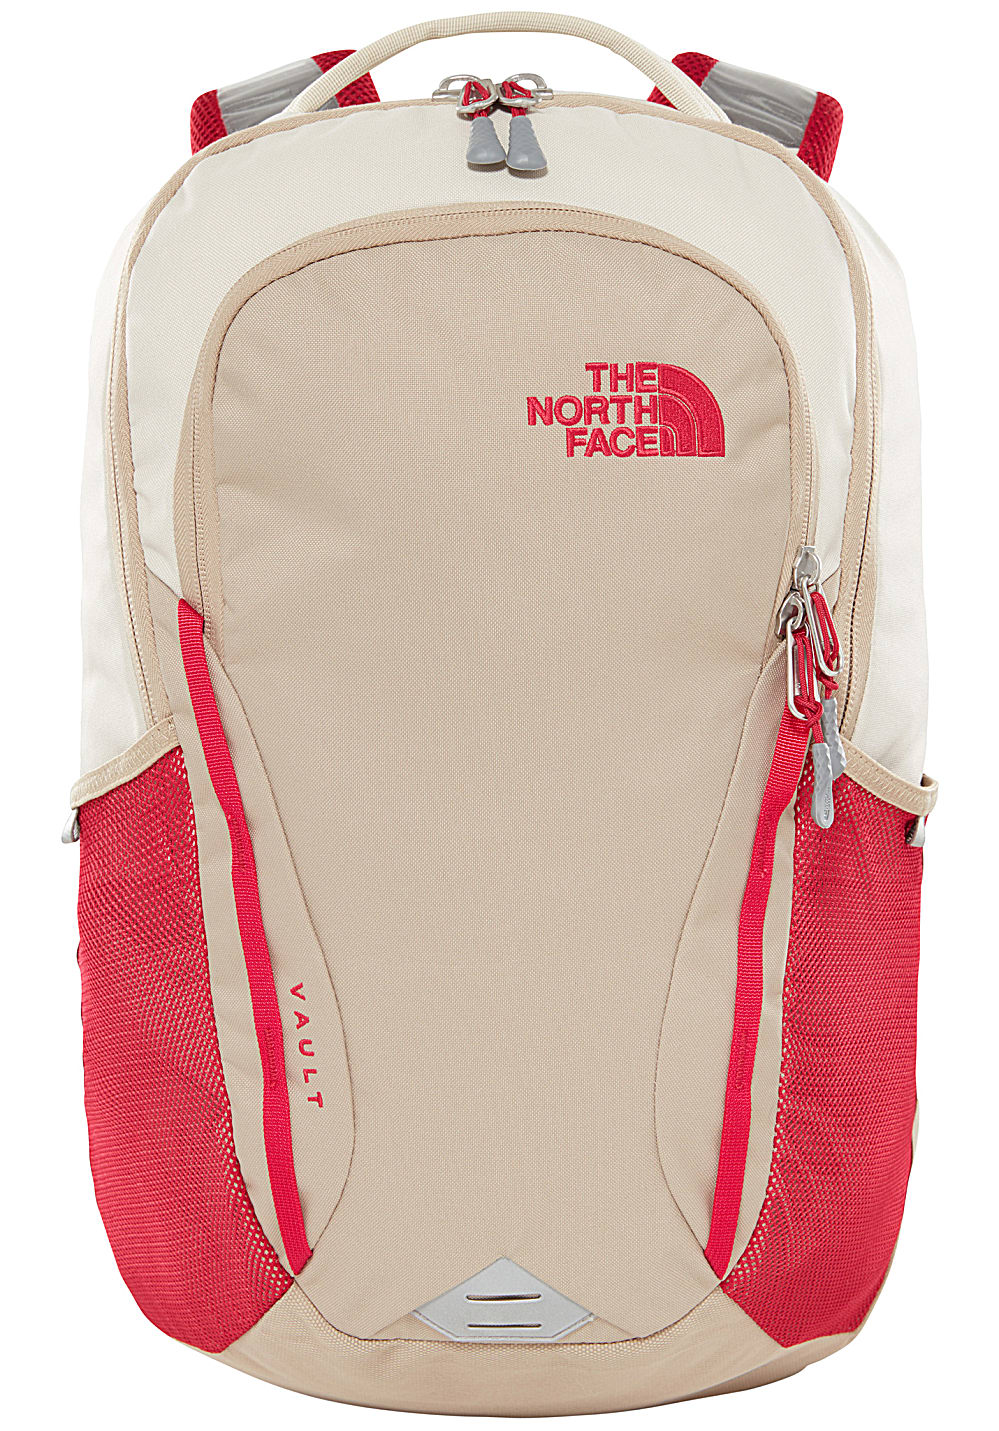 The North Face Vault - Rucksack für Damen - Beige